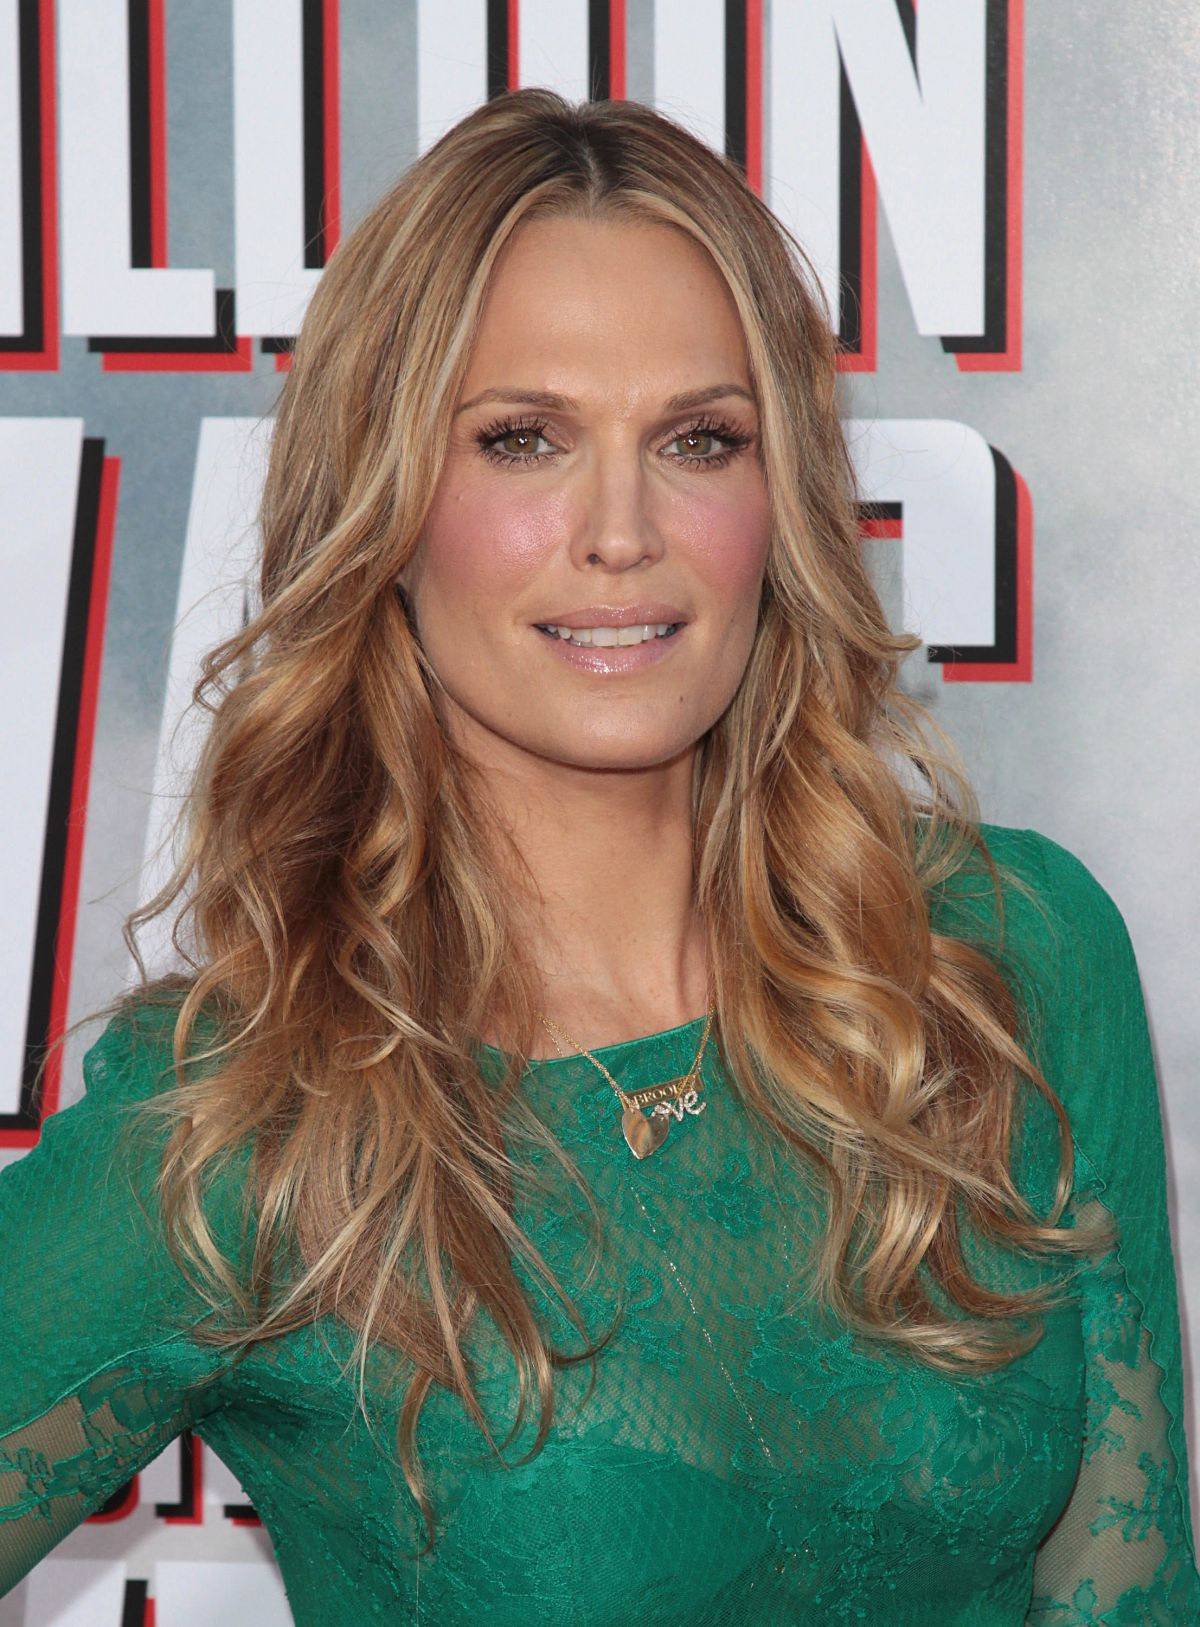 Leaked Molly Sims naked (53 foto and video), Pussy, Cleavage, Feet, legs 2019